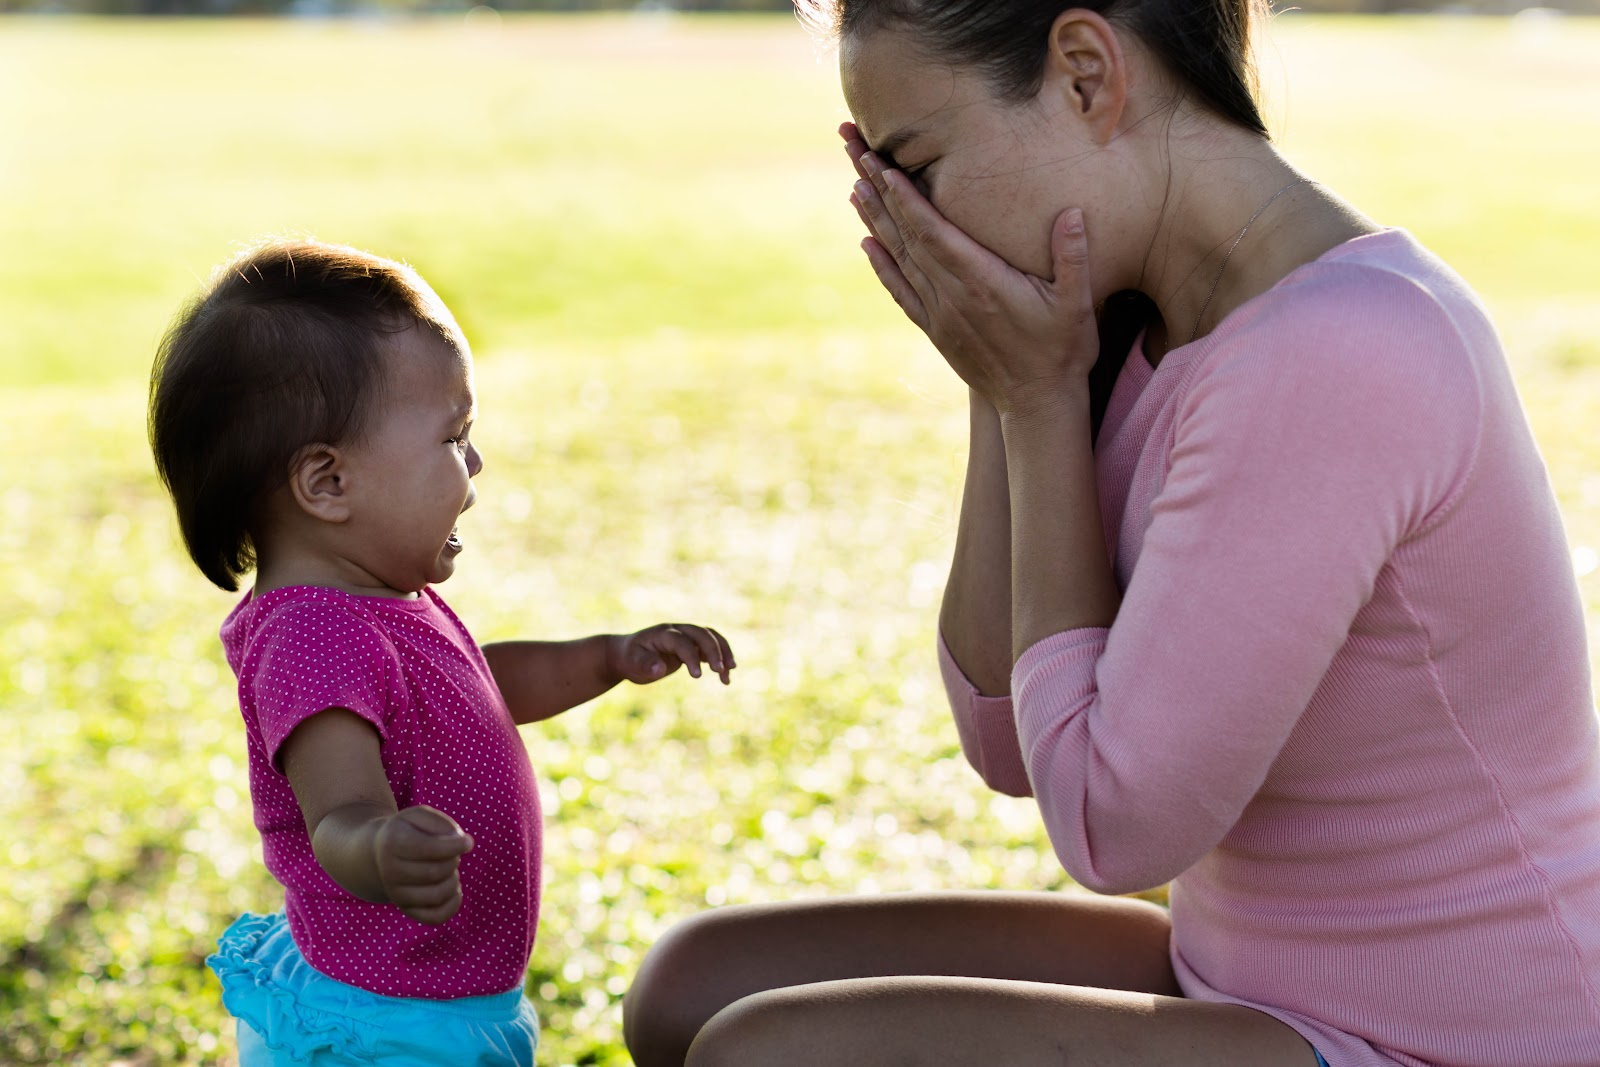 A crying baby looking at her mother in a field, covering her face crying